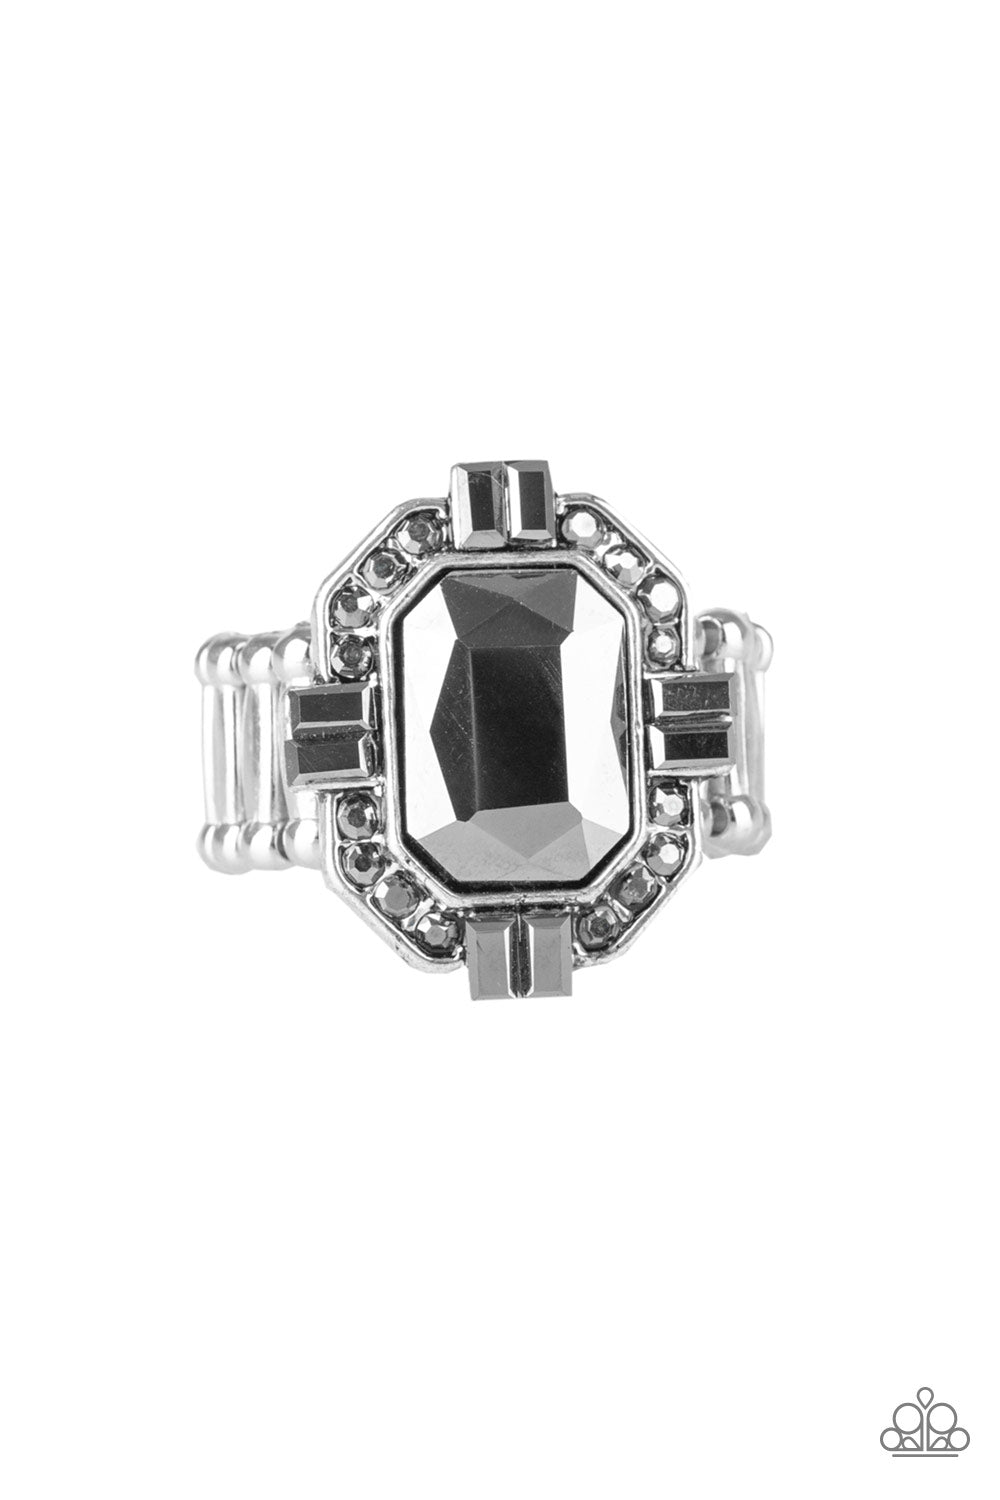 Paparazzi Accessories - Outta My Way! - Silver Ring - JMJ Jewelry Collection